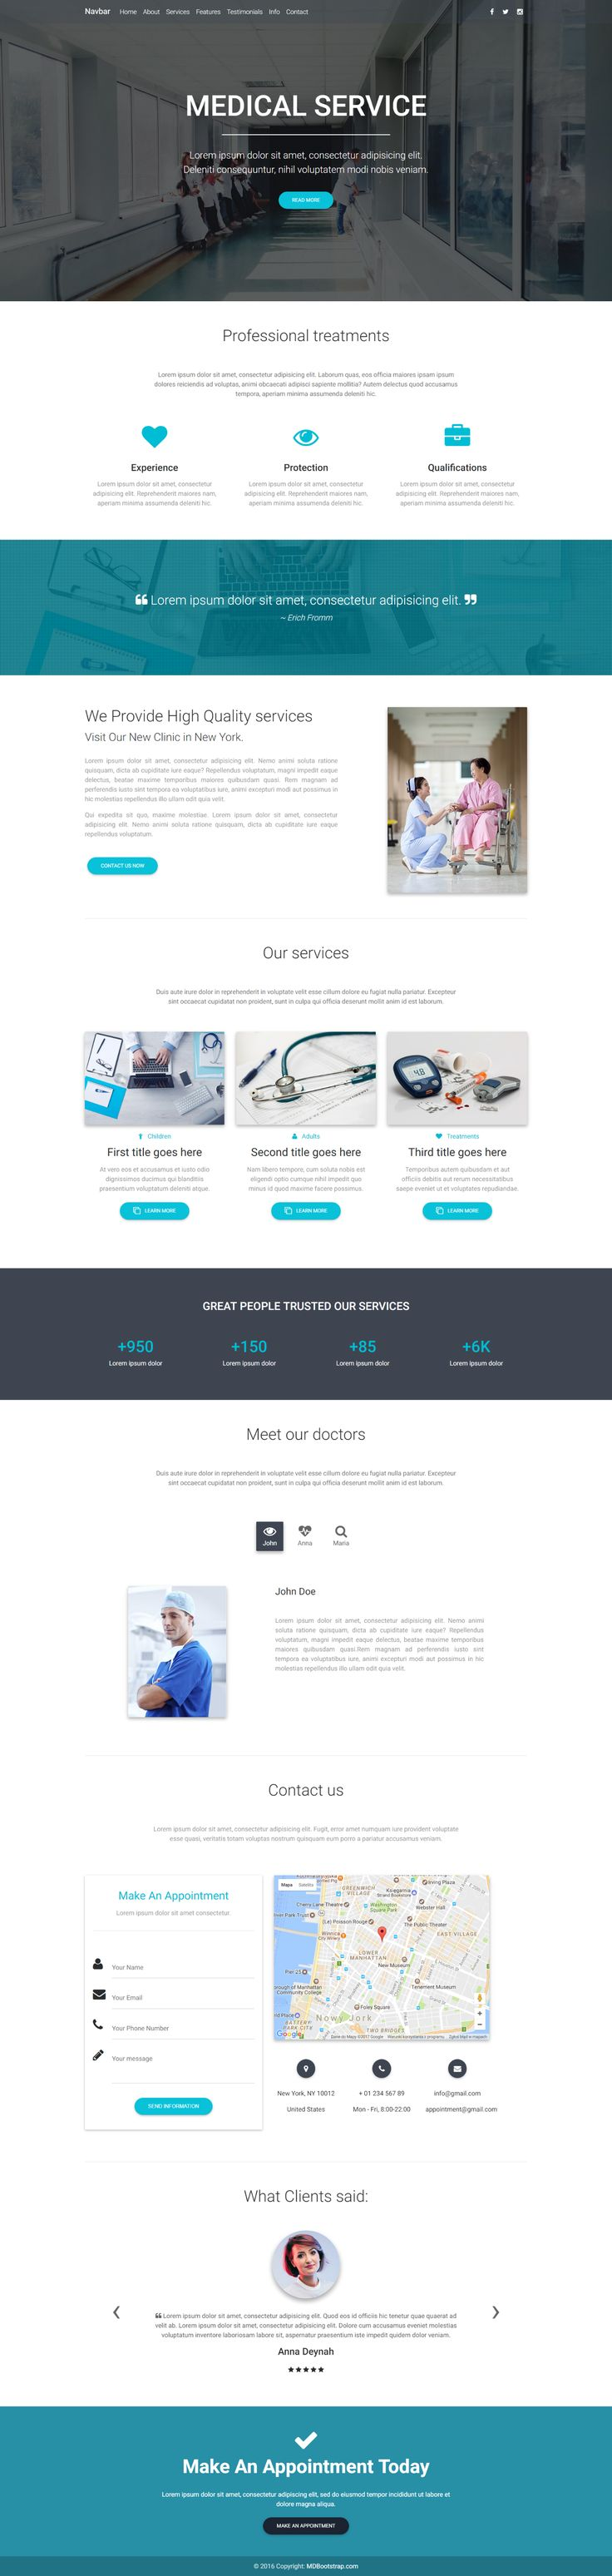 Medical Landing Page Template, perfect for businesses related to health